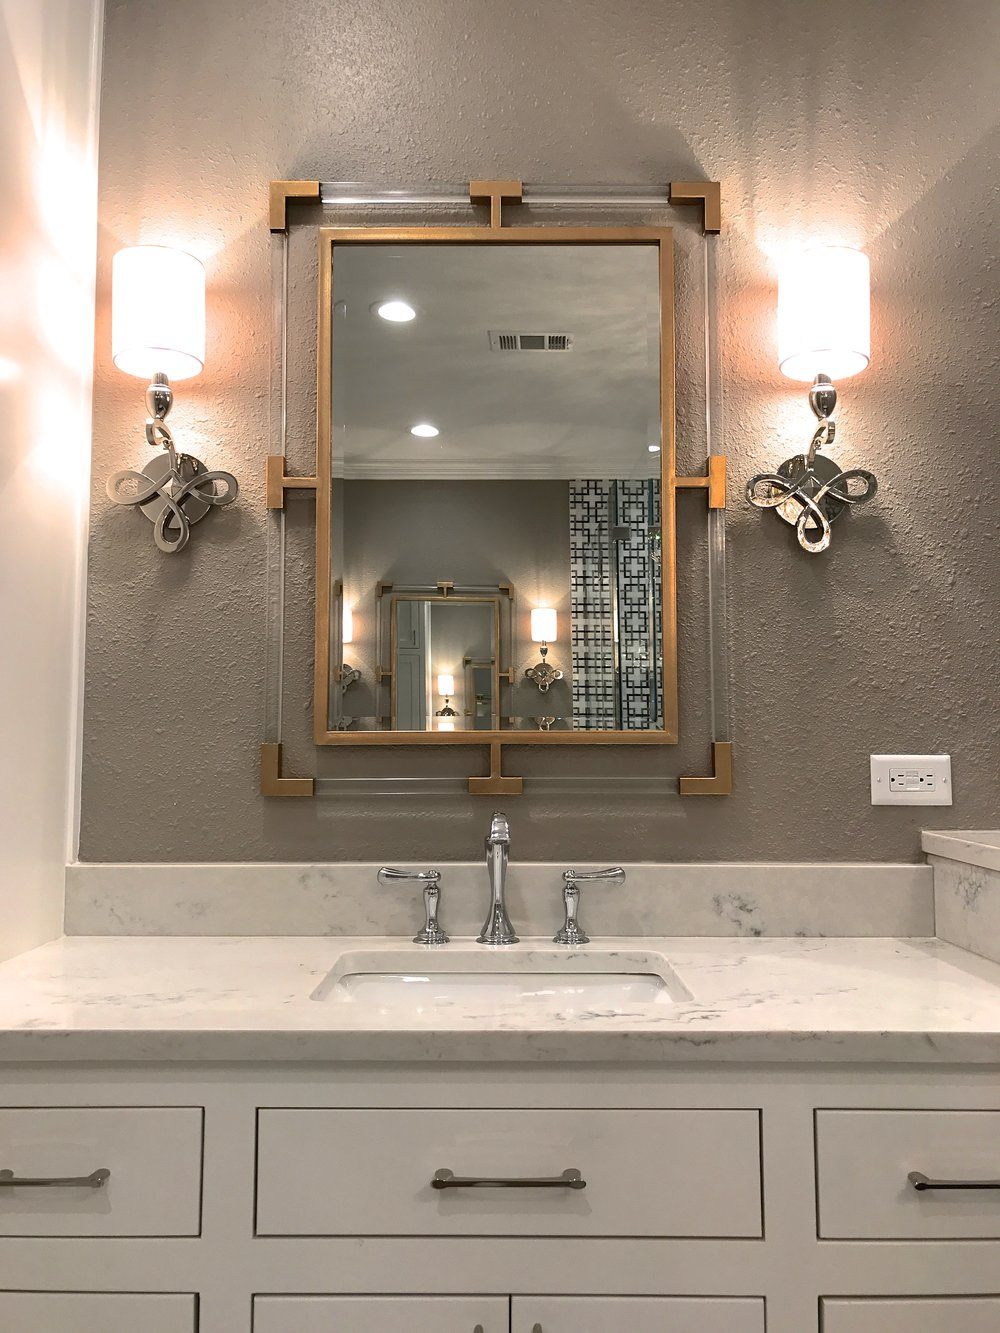 The shape of the gold leaf vanity mirror mimics the pattern in the marble wall tile. Again with the details.